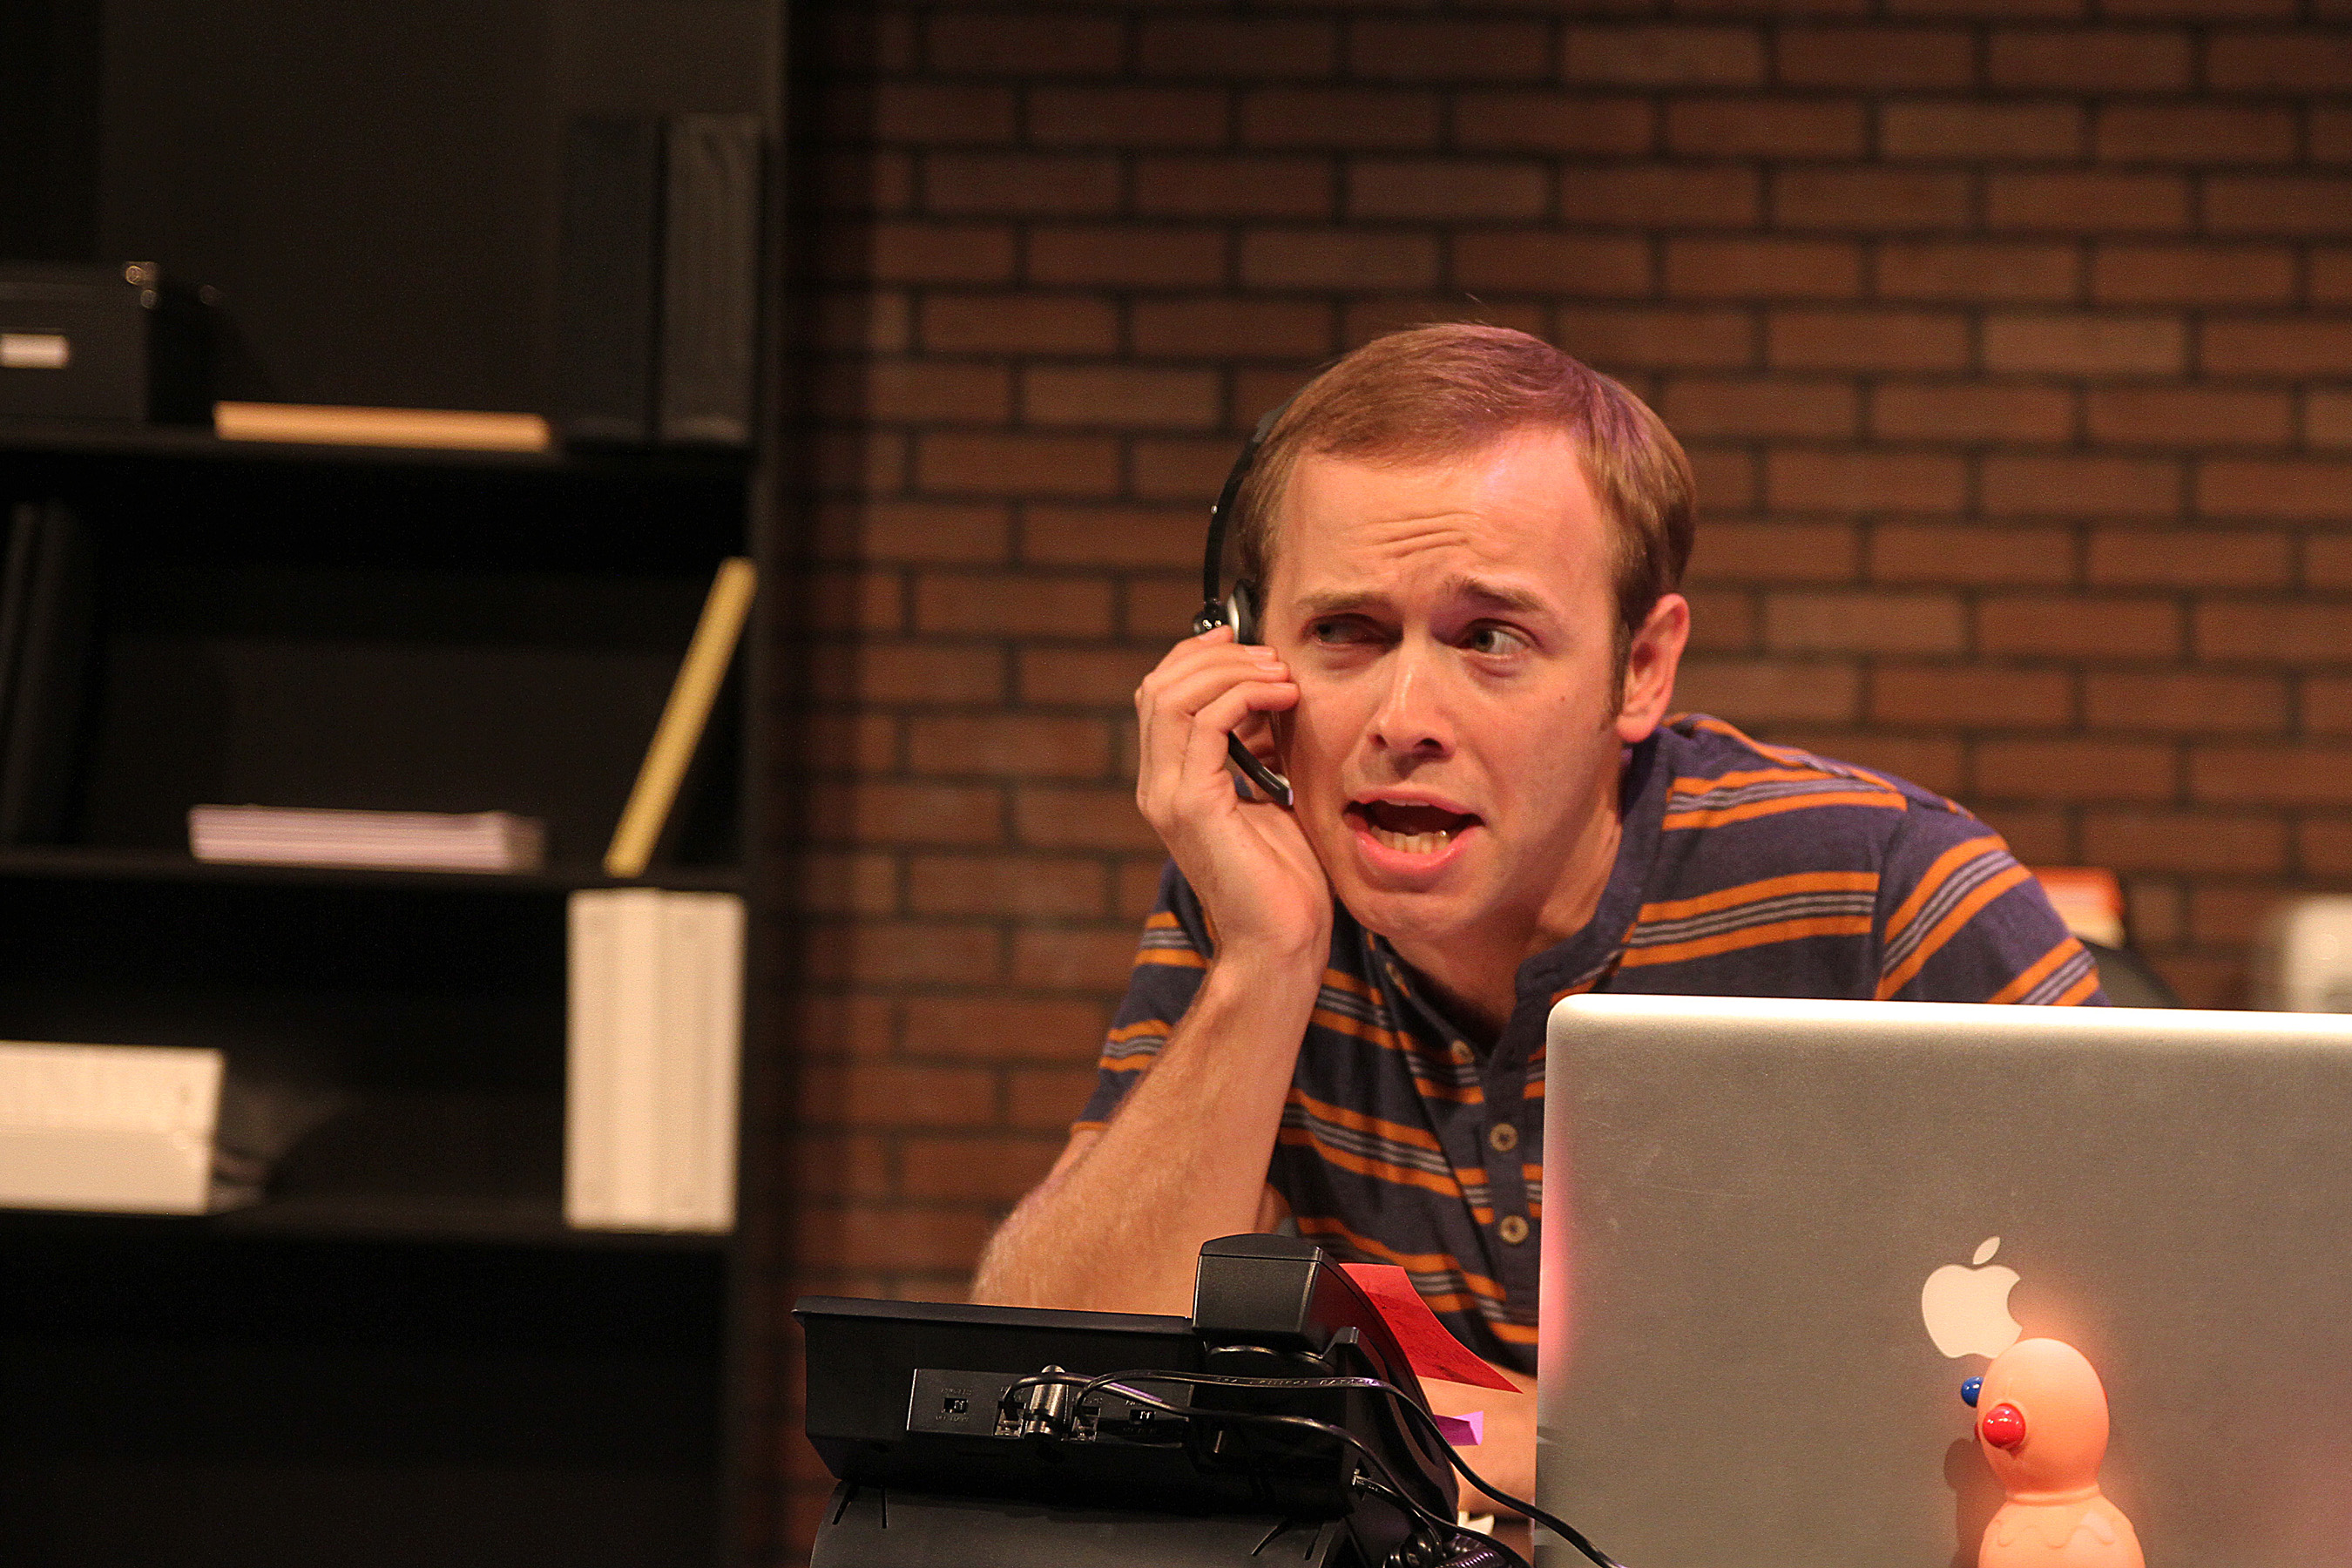 BWW Reviews: Black Lab Theatre's ASSISTANCE is Witty and Relateable